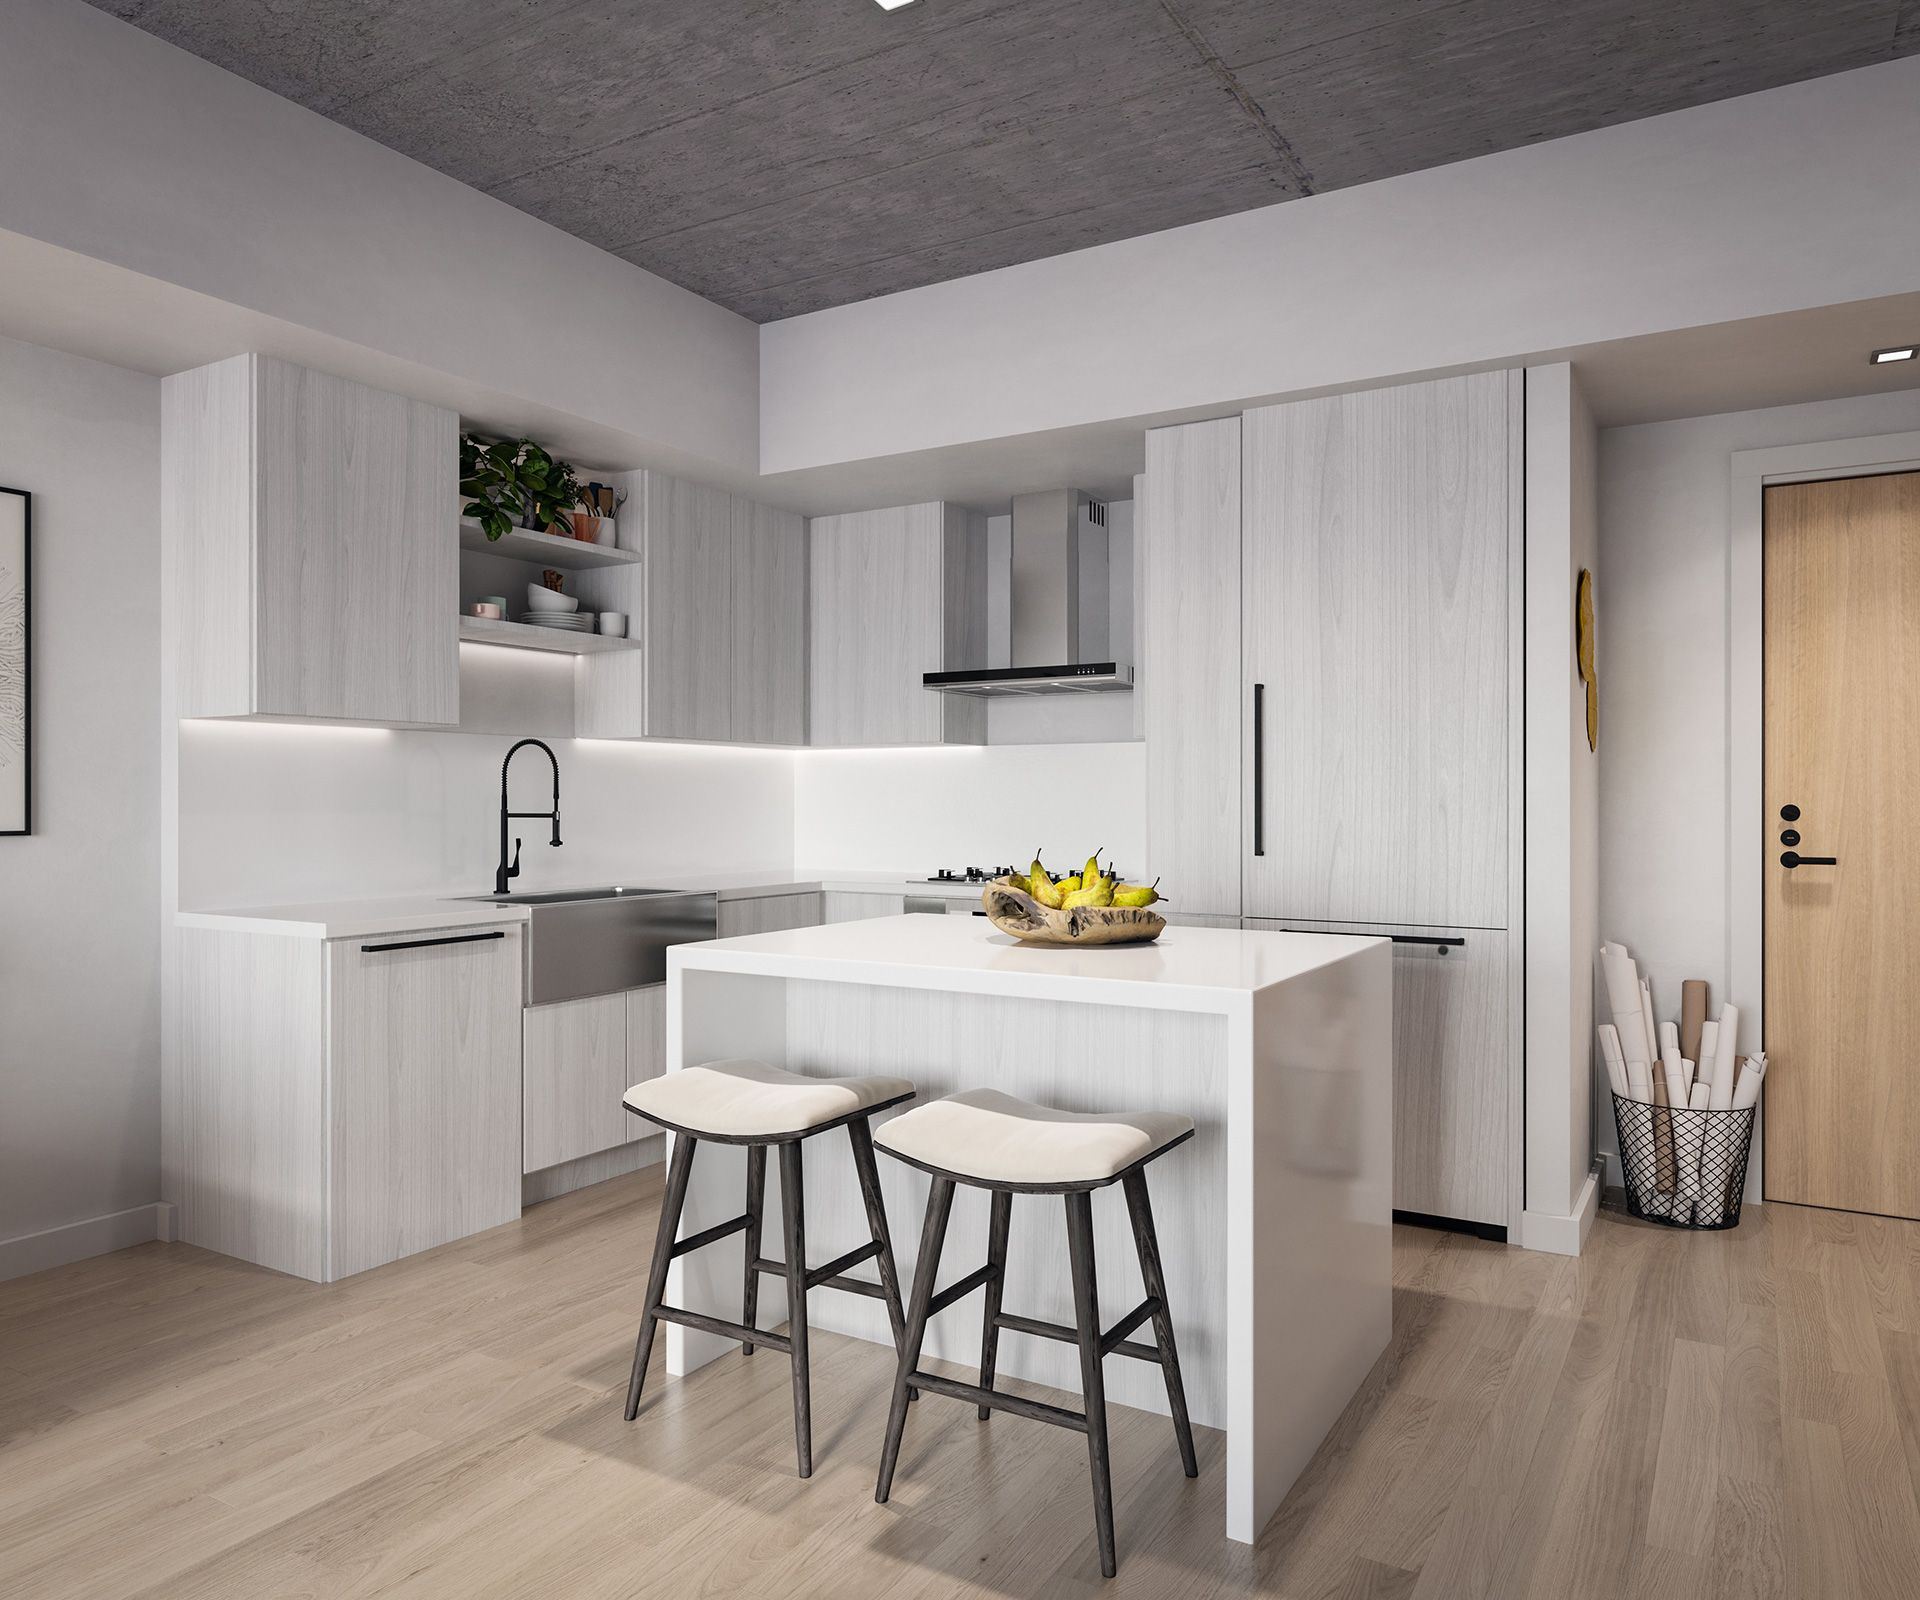 Apartment kitchen with white appliances and island